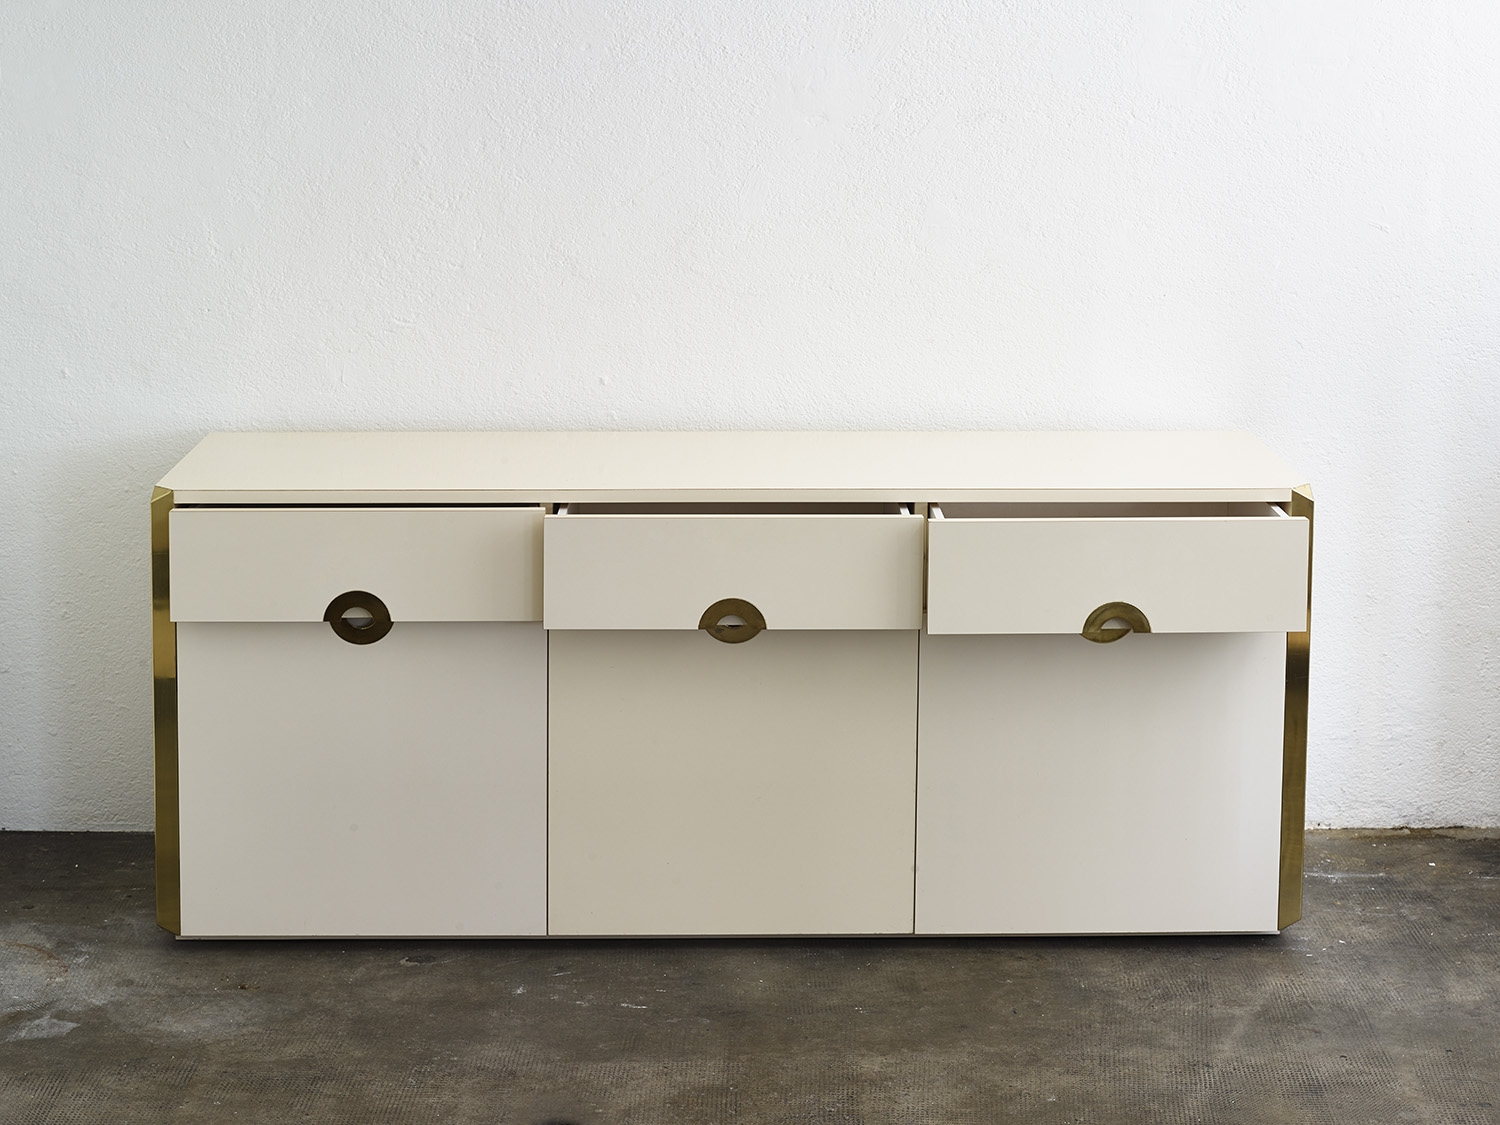 sideboard-alveo-de-willy-rizzo-ed-mario-sabot-1970-image-07